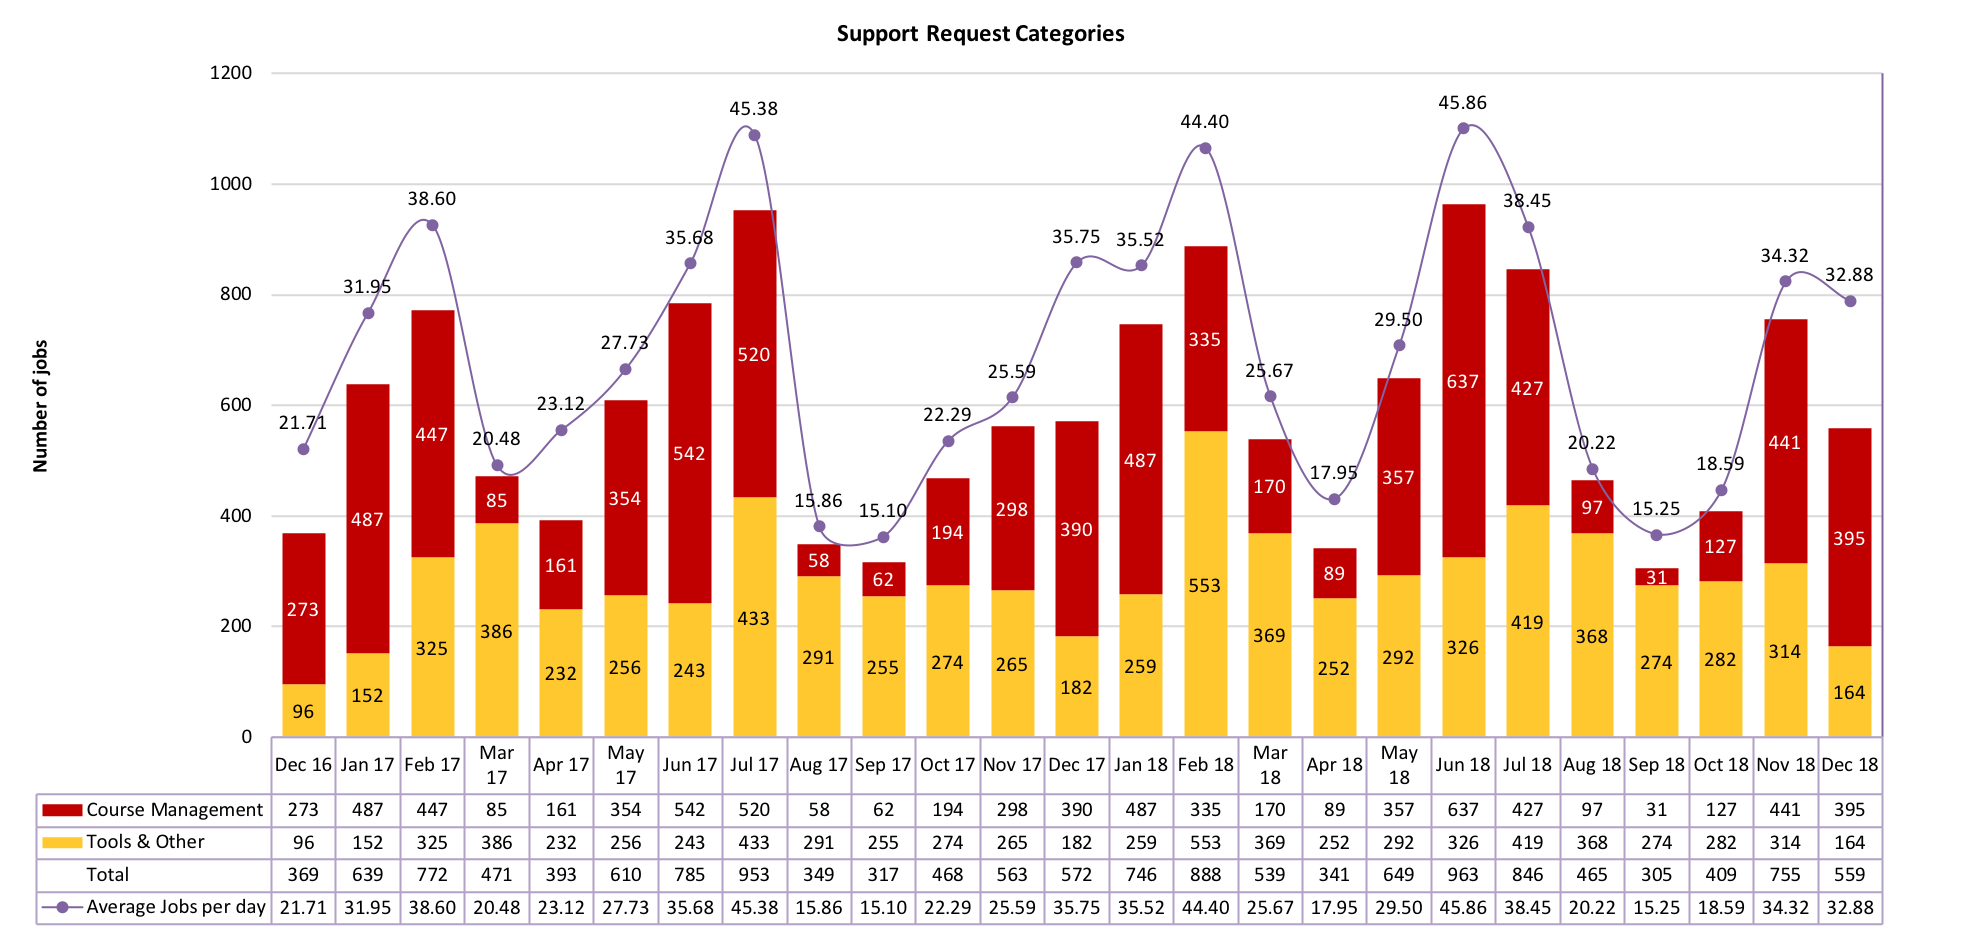 Chart of Support Request Categories from December 2016 to December 2018